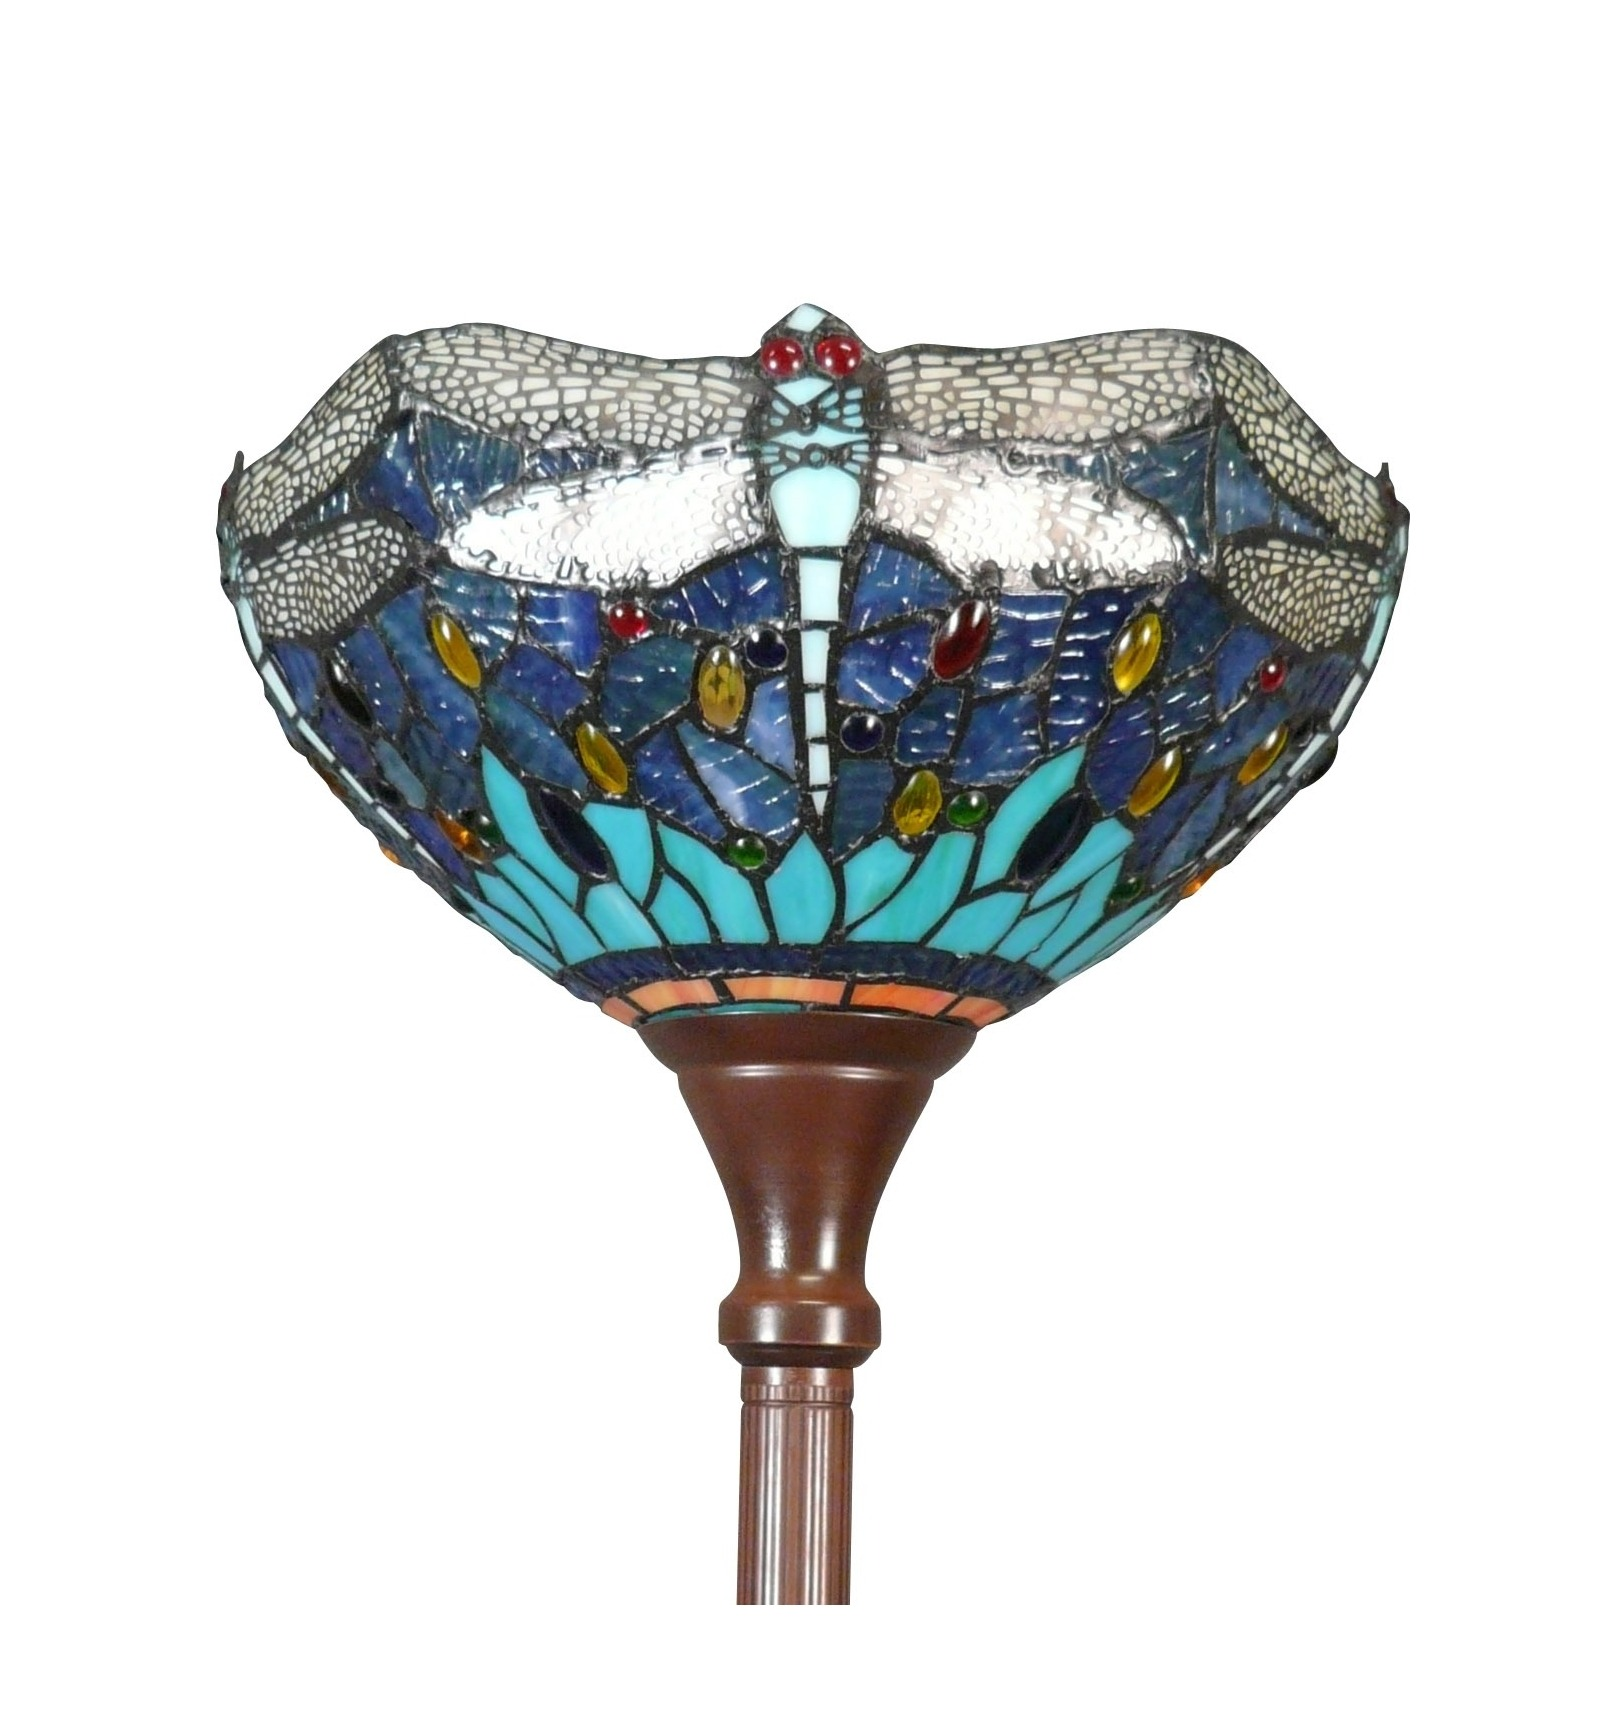 Tiffany floor lamp dragonfly blue and green tiffany lamps tiffany floor lamp dragonflies aloadofball Gallery